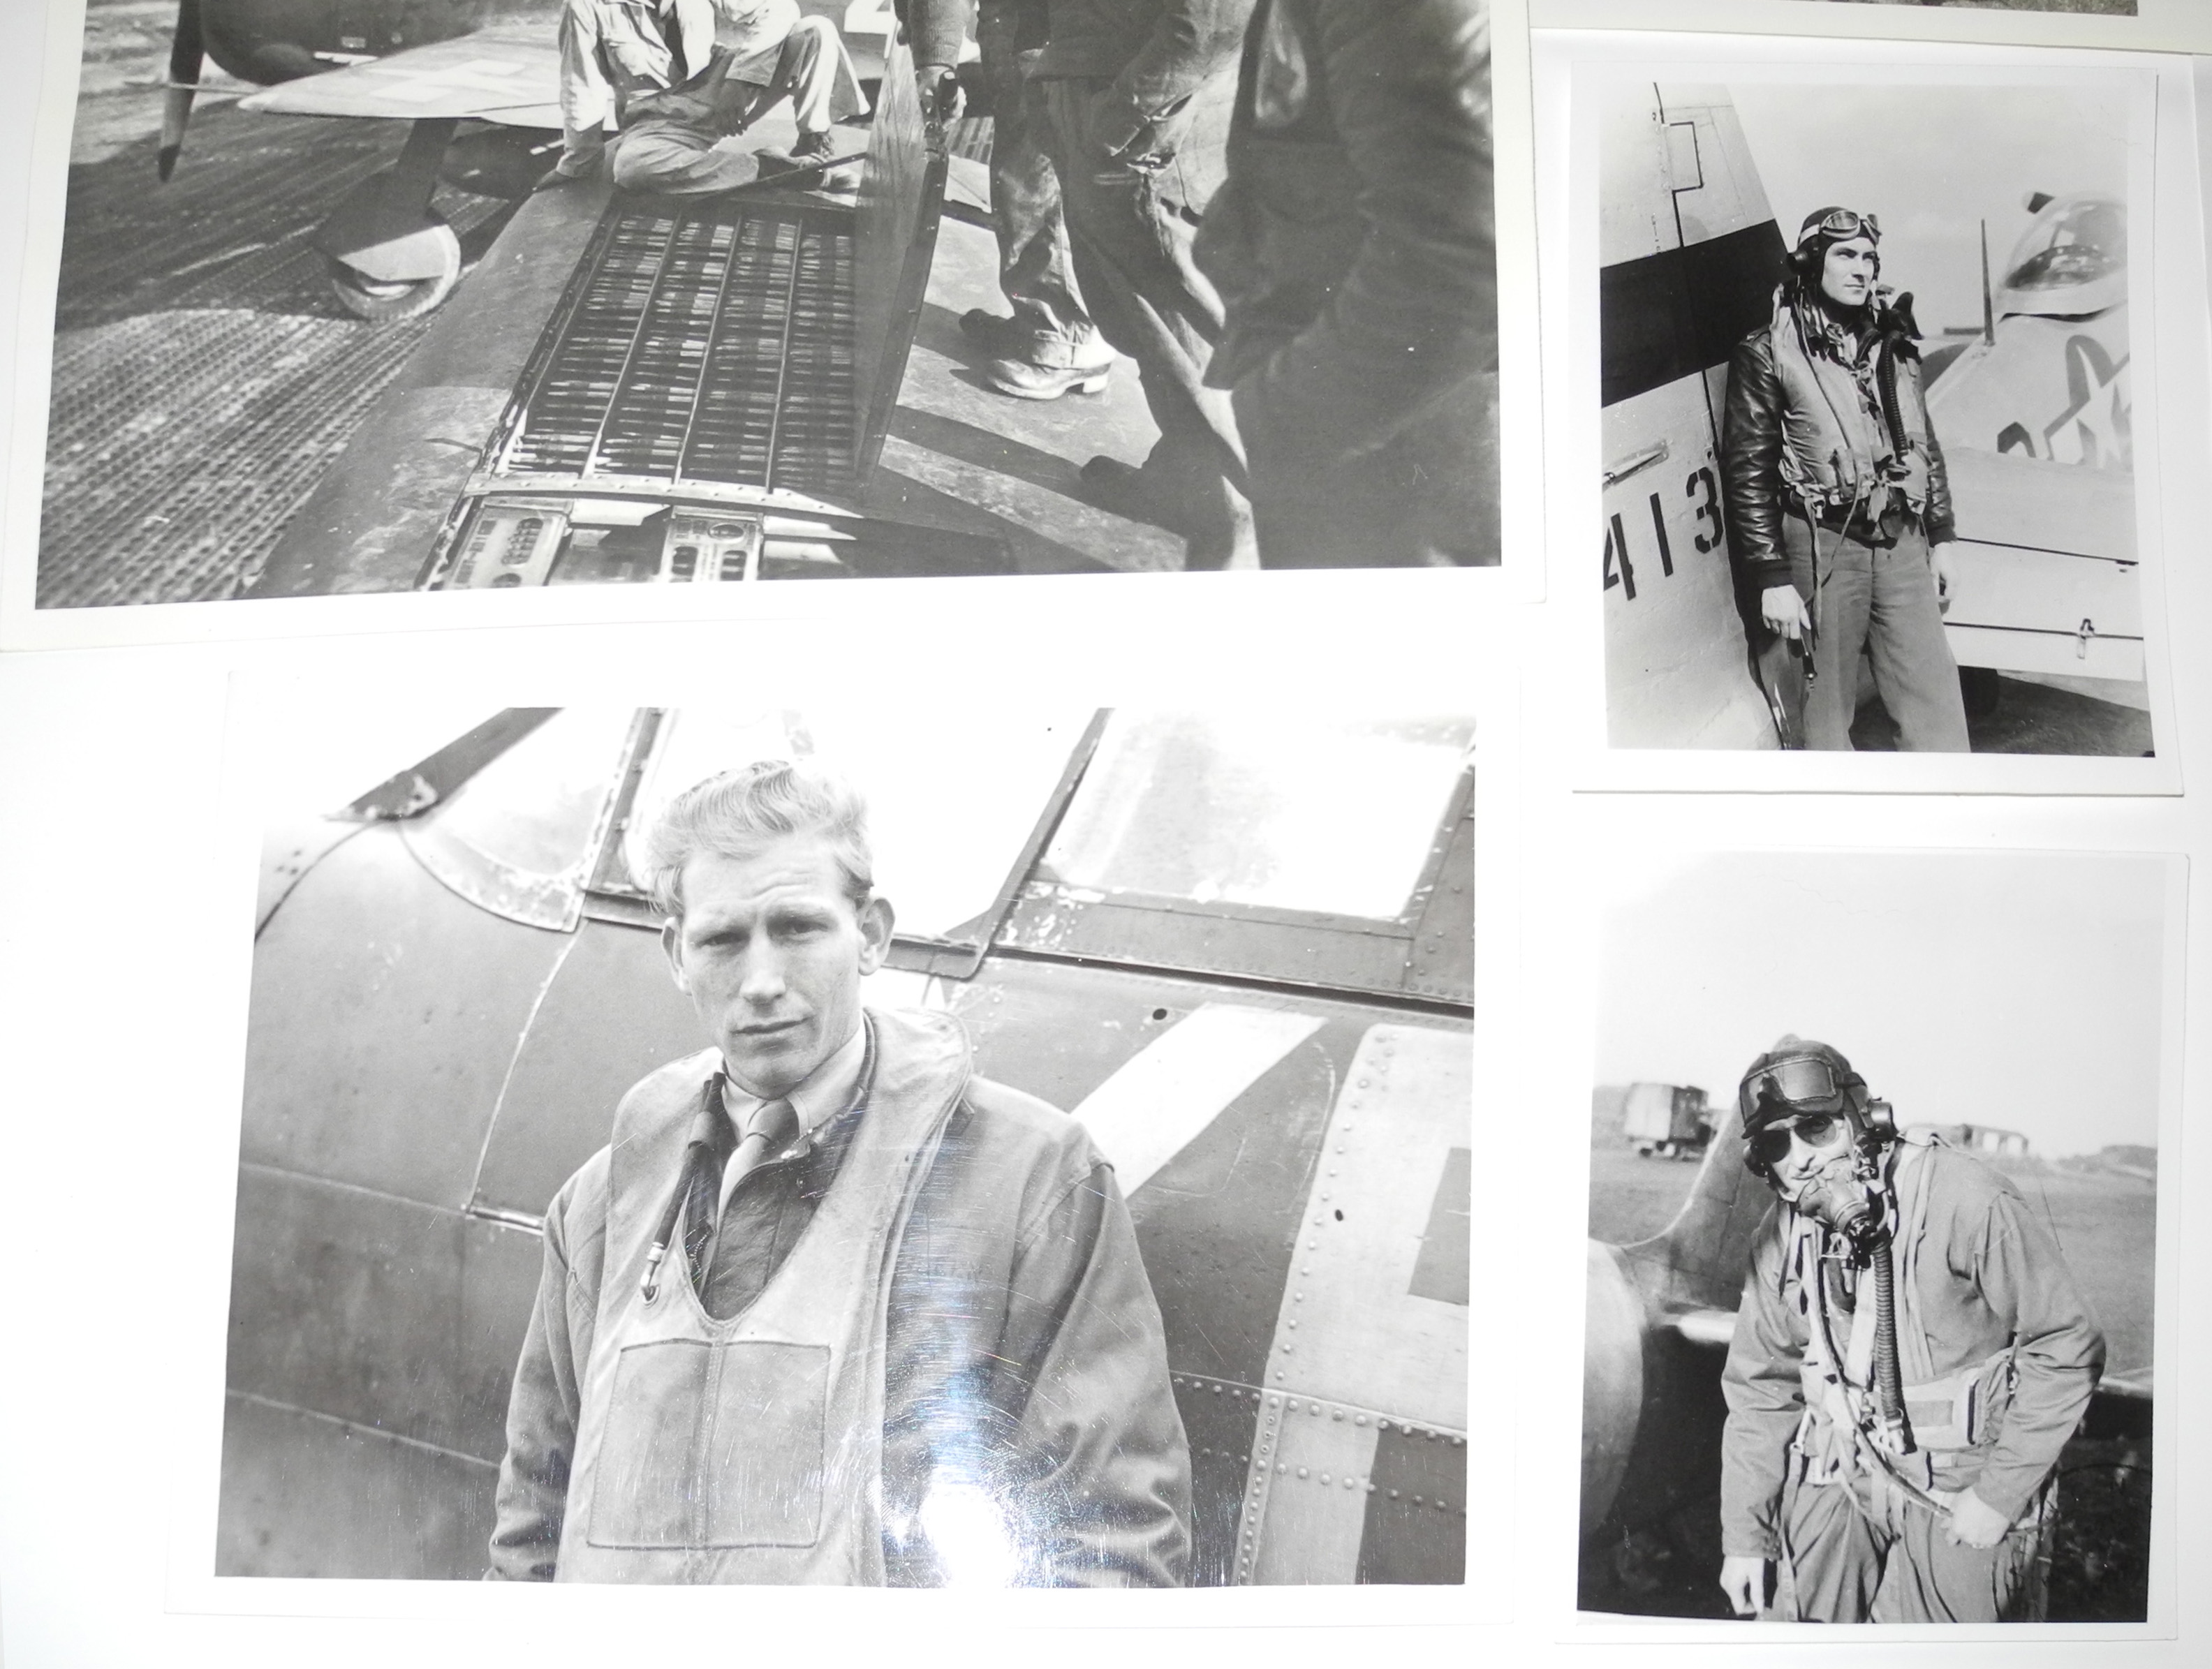 Eagles and AAF fighter pilots original photos